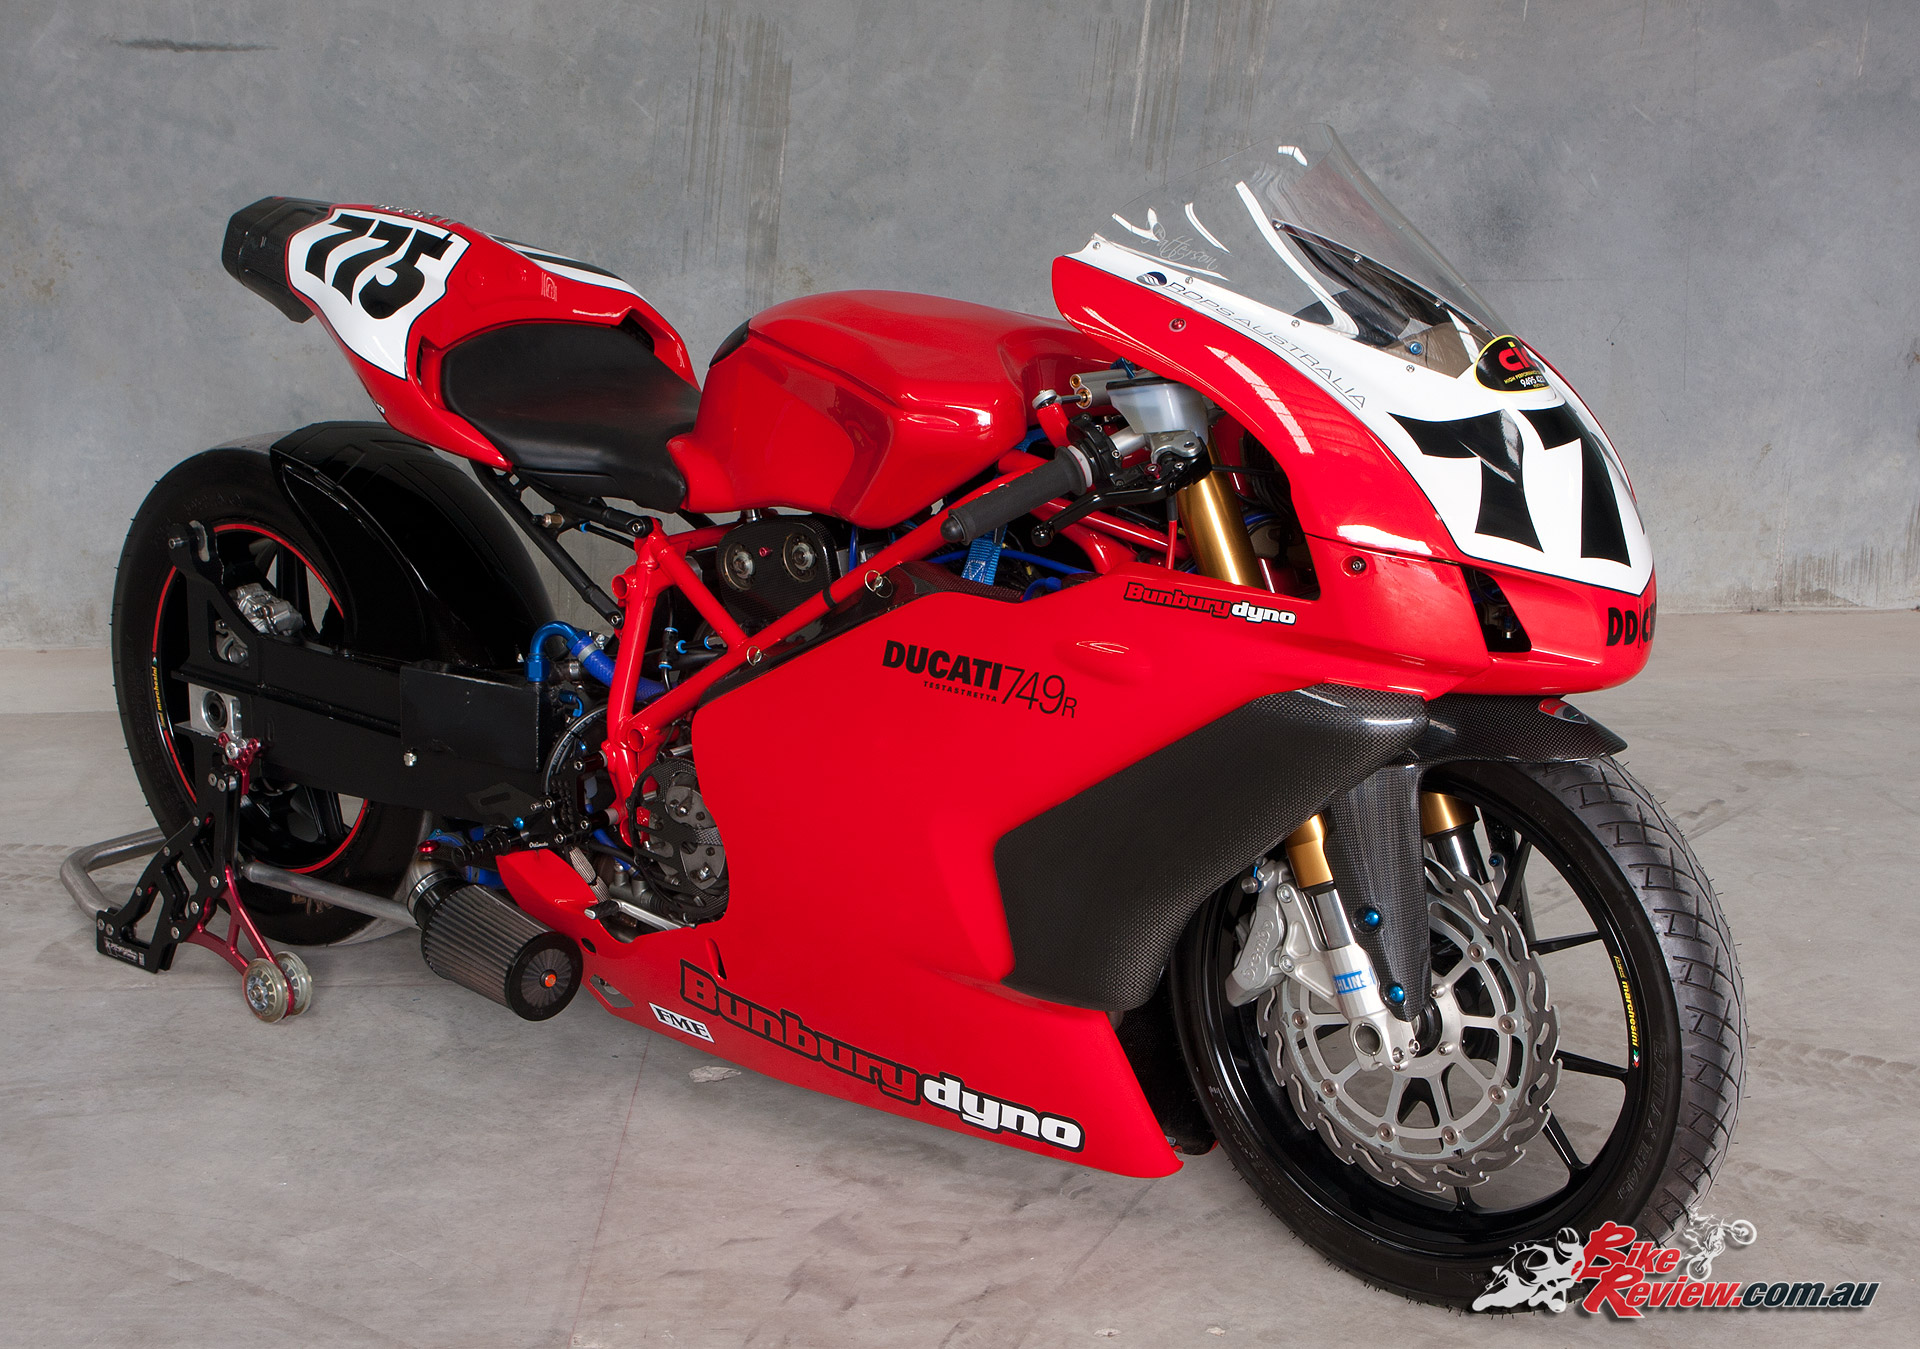 Stretched custom Ducati 749 turbo dragster - Bike Review